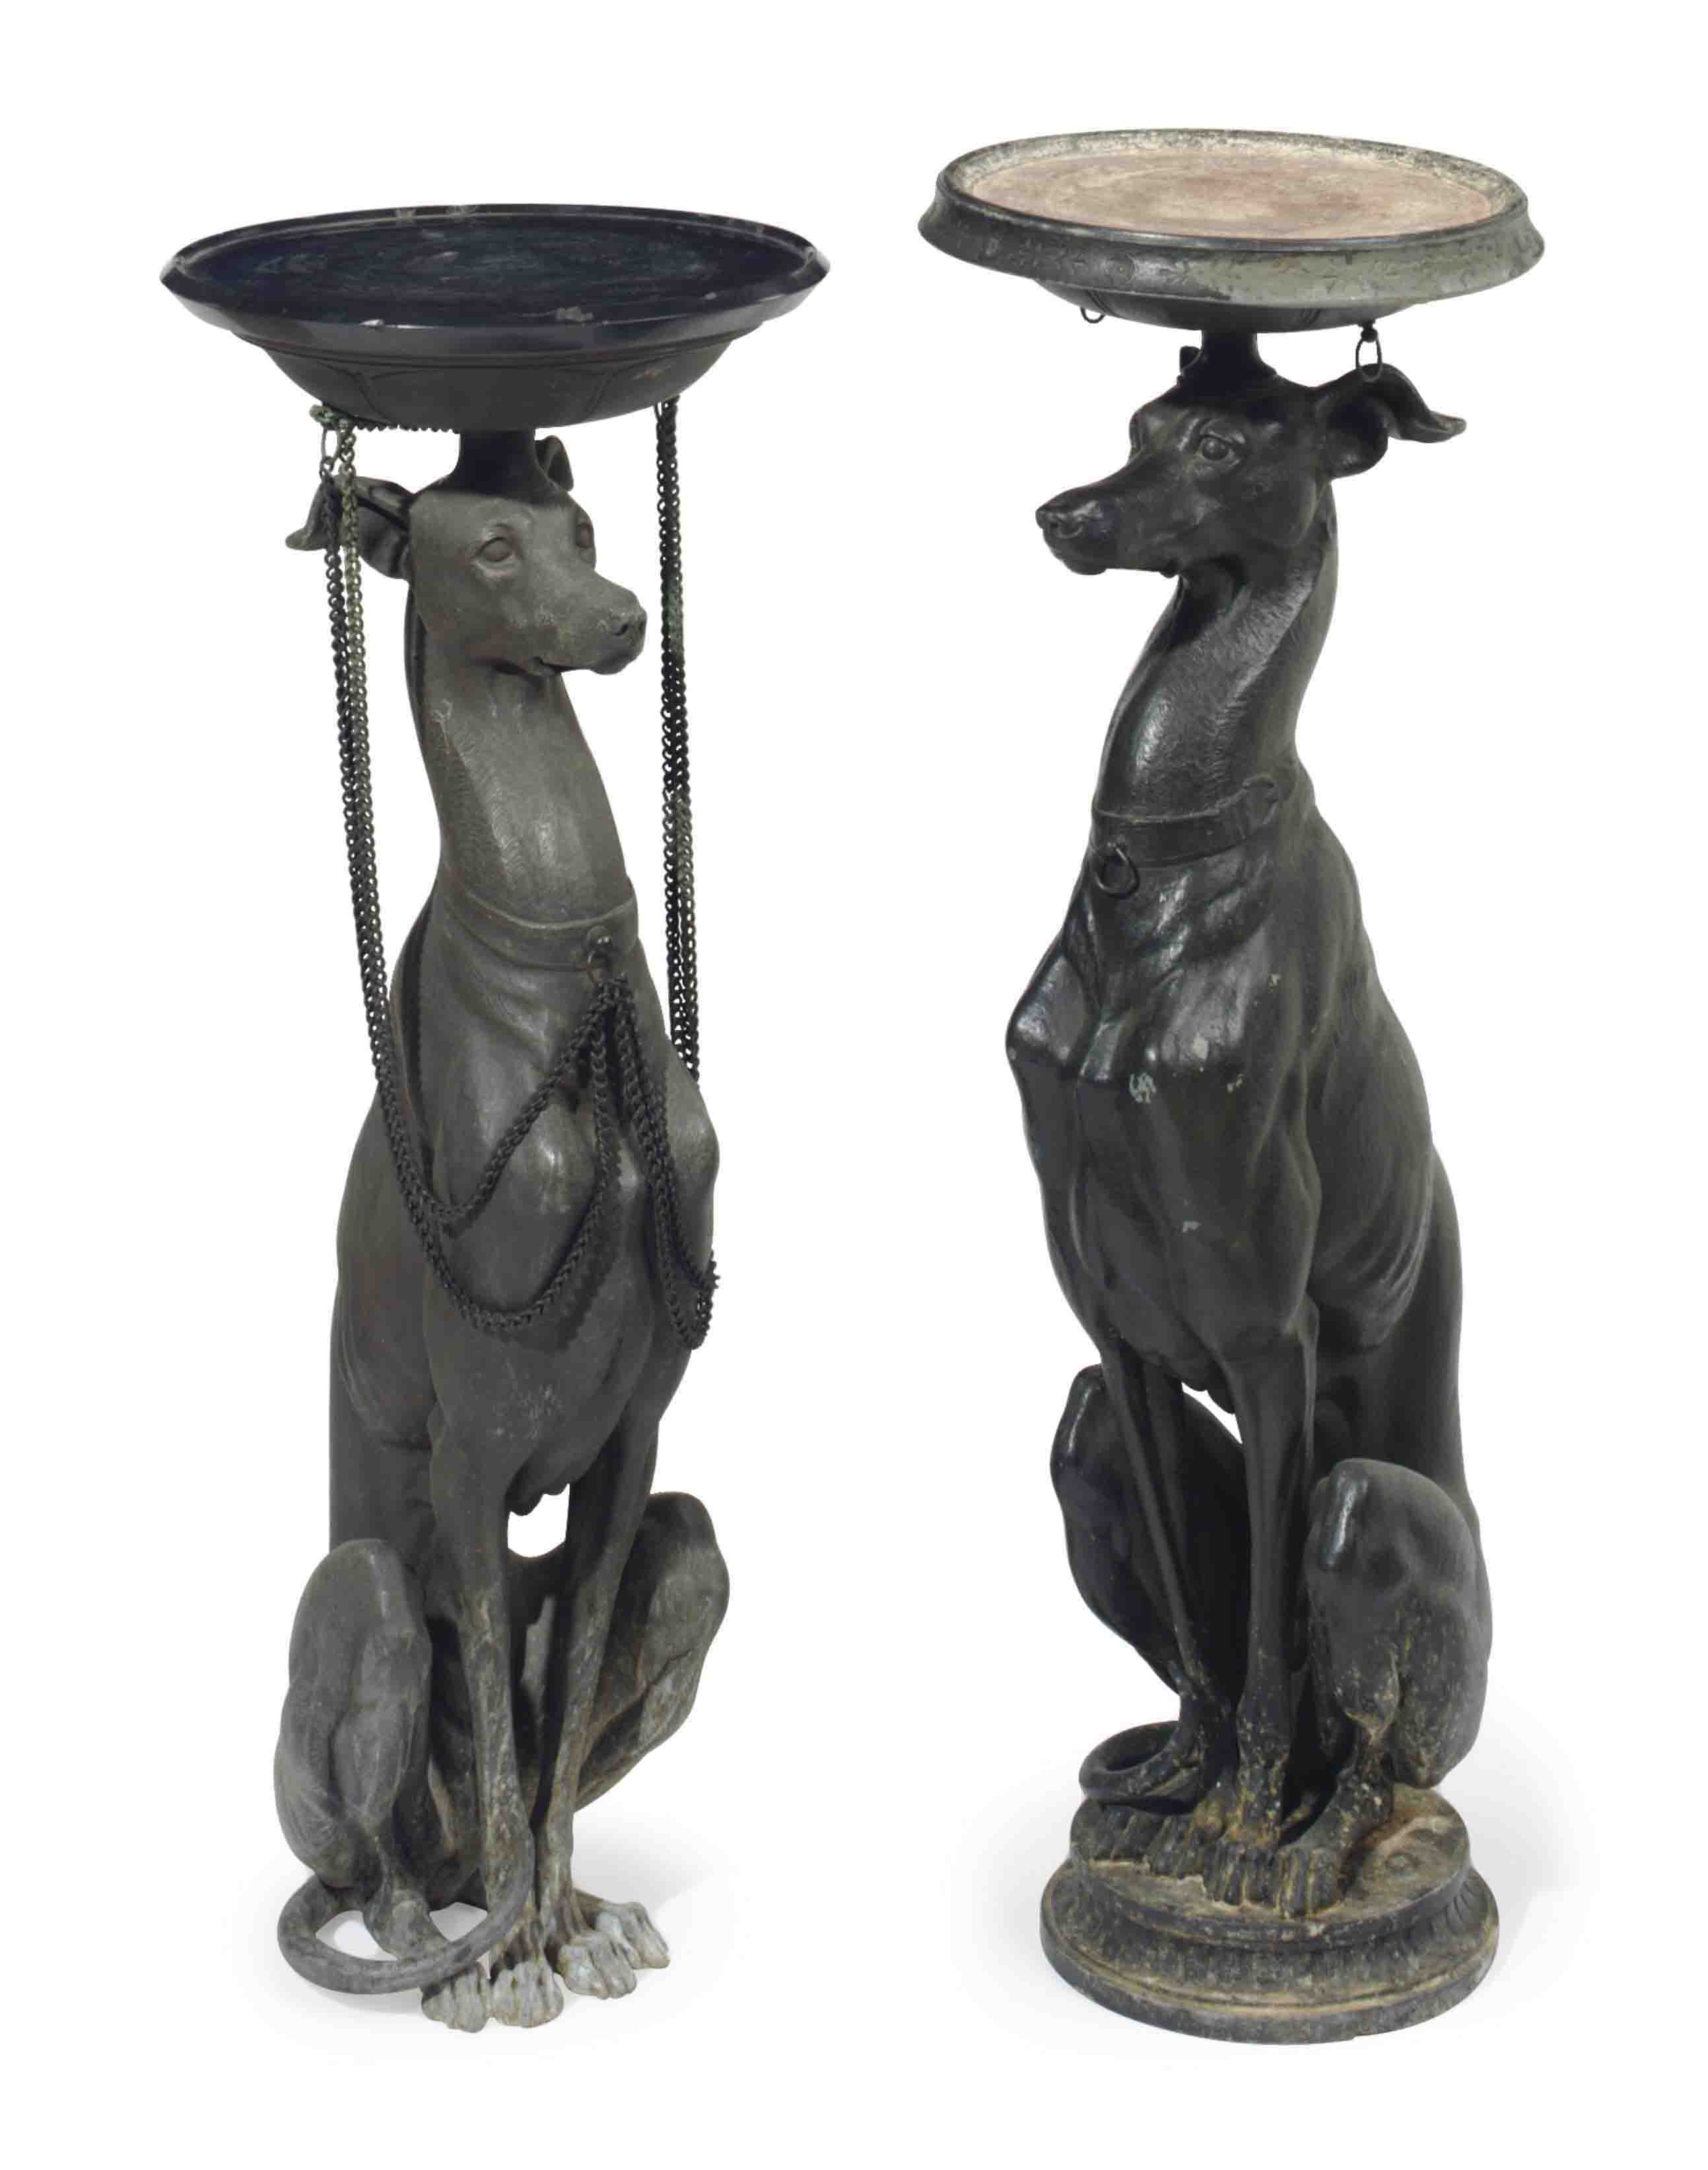 A PAIR OF CONTINENTAL PATINATED BRONZE GREYHOUSE-FORM PEDESTALS,